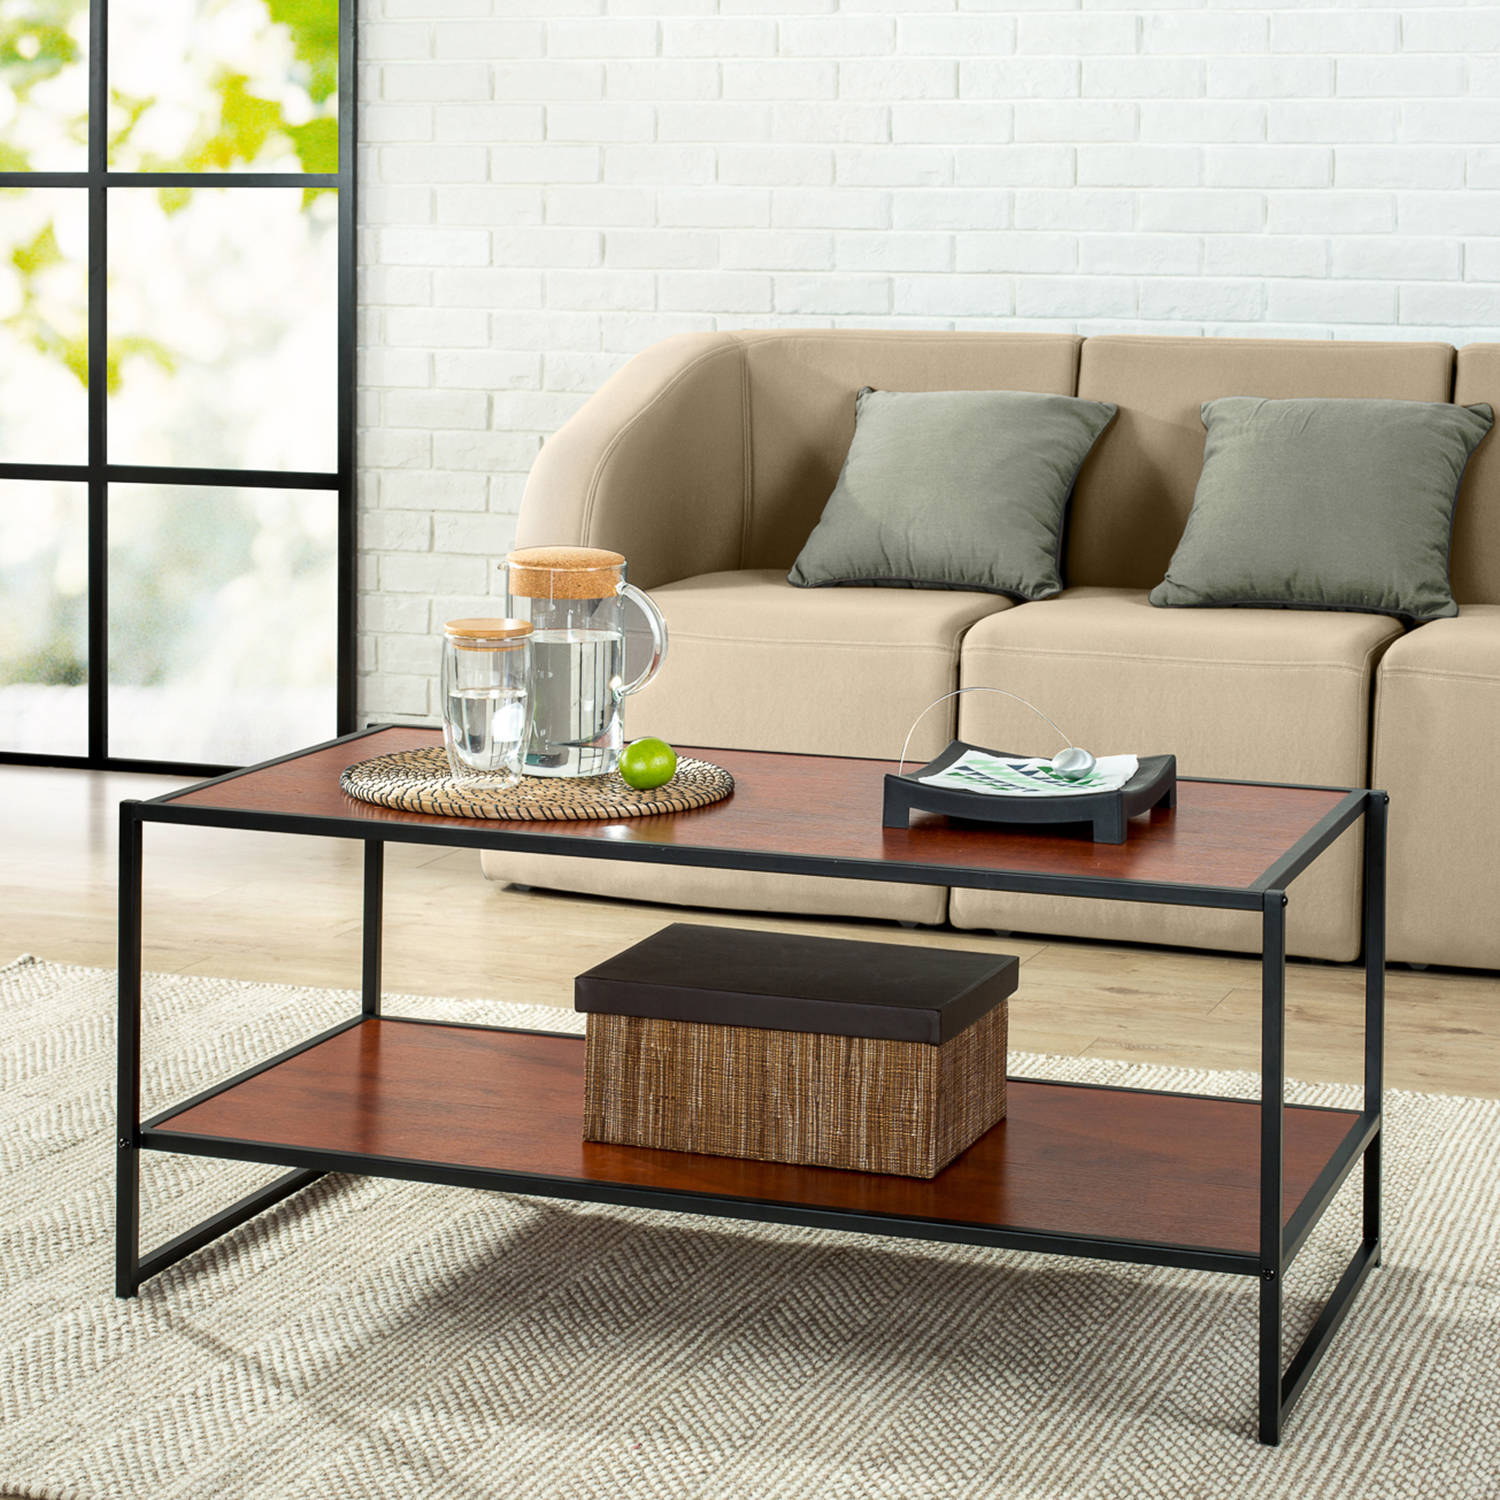 Modern Studio Collection Deluxe Rectangular Coffee Table Walmart